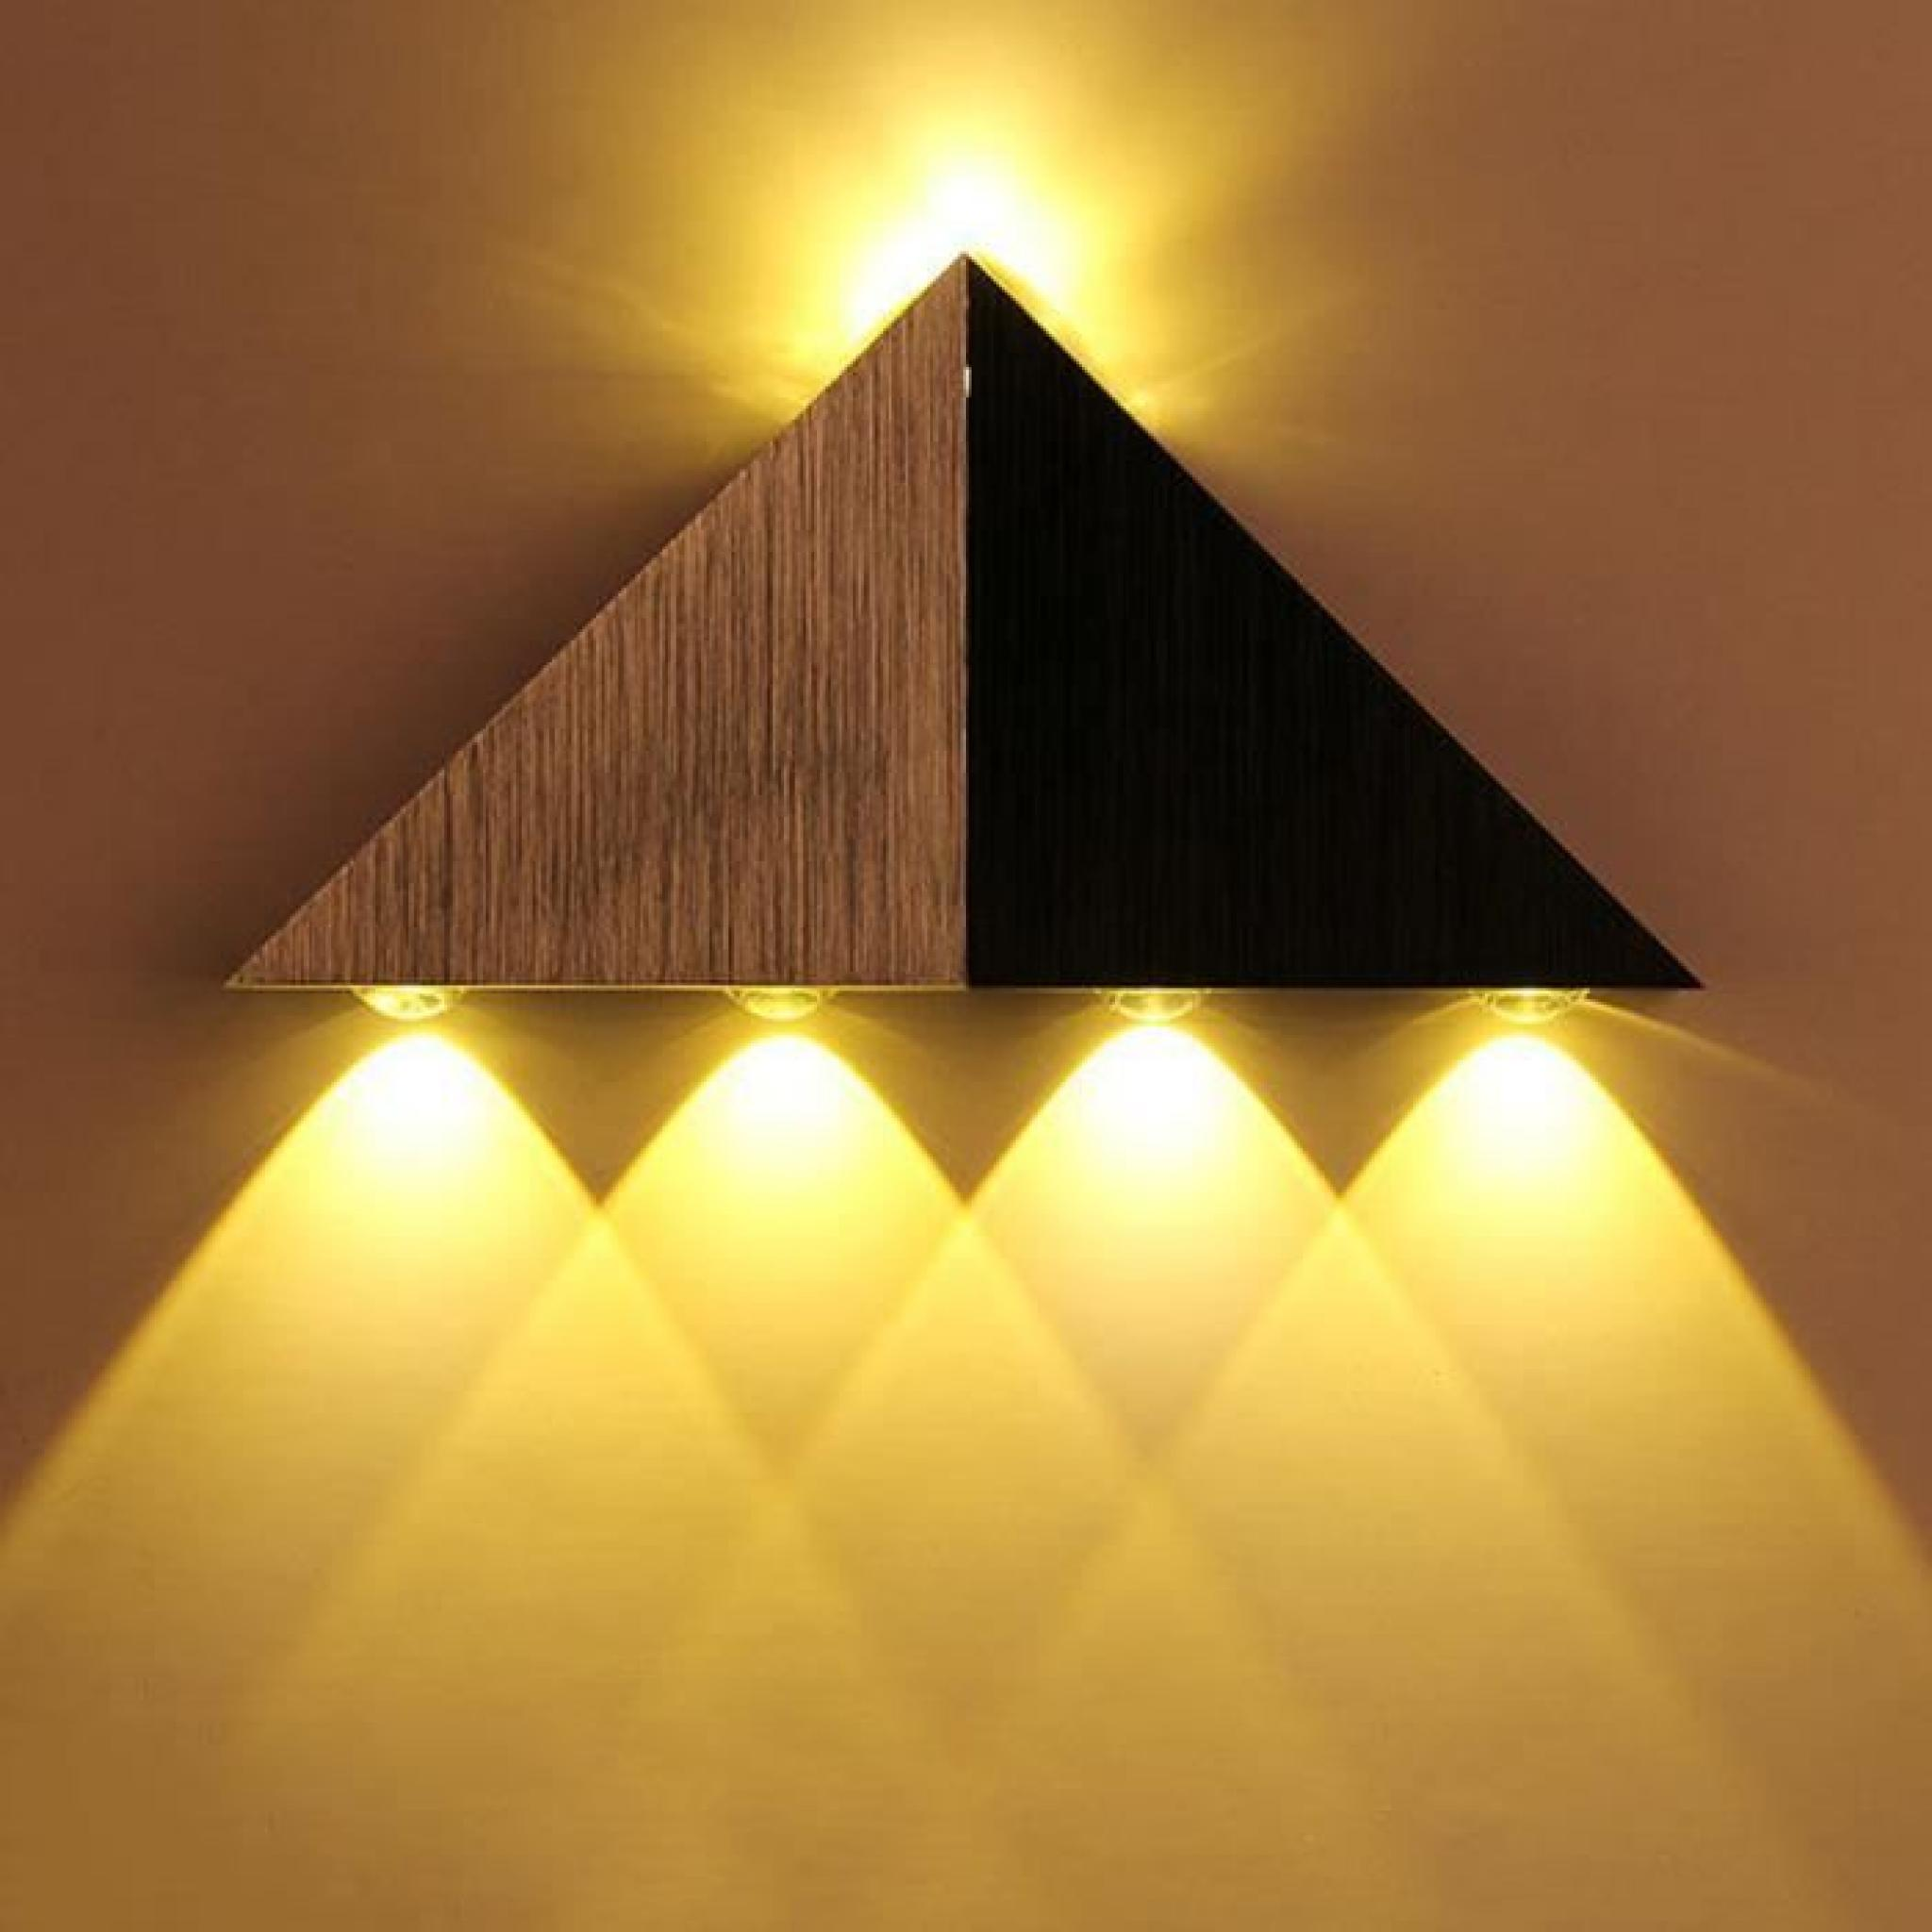 Applique murale en aluminium 5w lampe led triangle de mur for Lumiere applique murale